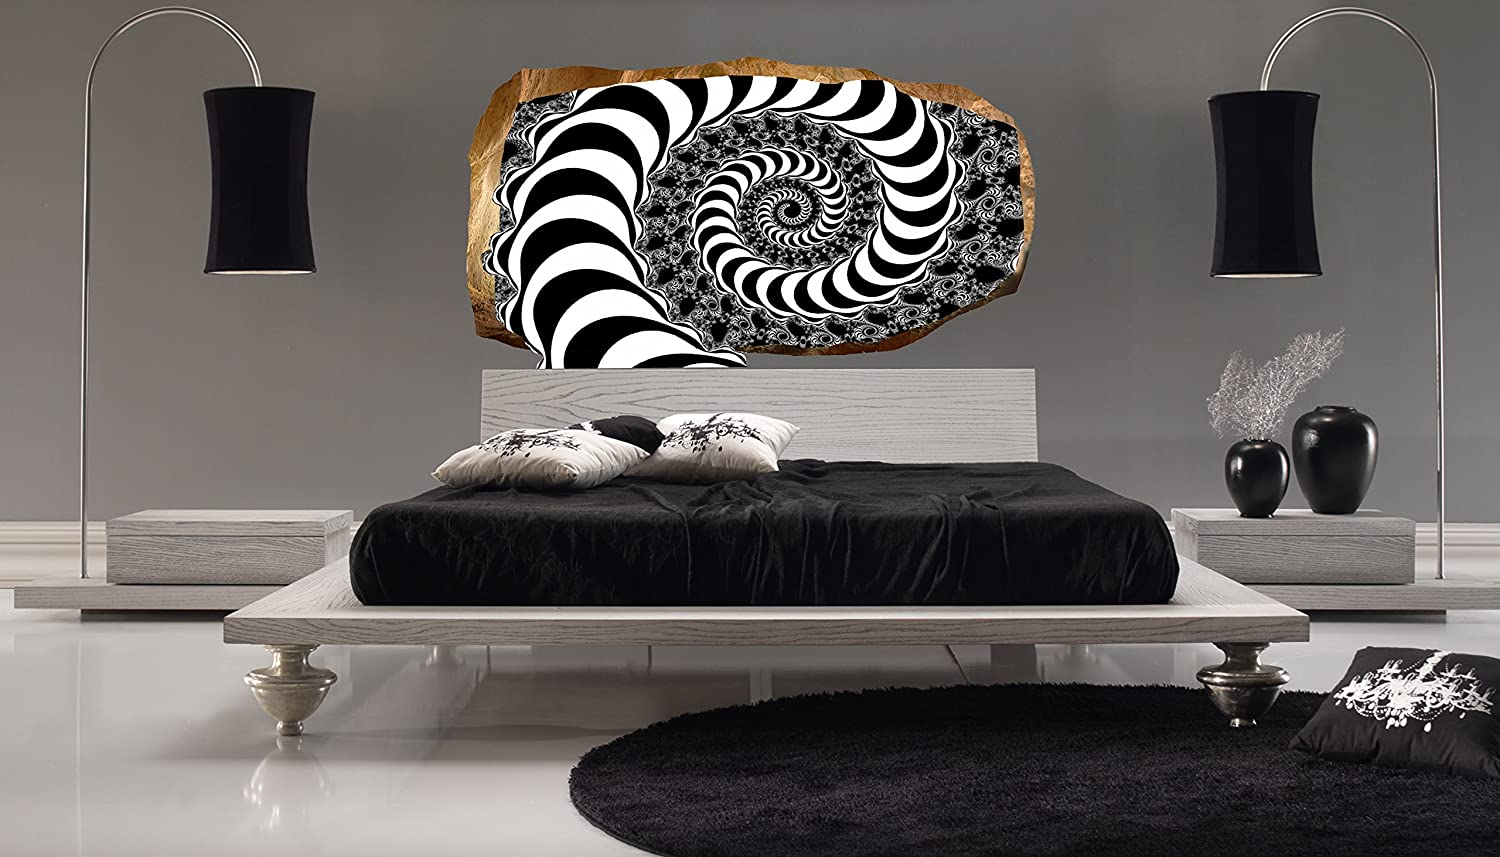 Startonight 3D Mural Wall Art Photo Decor Hypnotic Spiral Amazing Dual View  Surprise Large Wall Mural Wallpaper For Living Room Or Bedroom Abstract Wall  Art ...